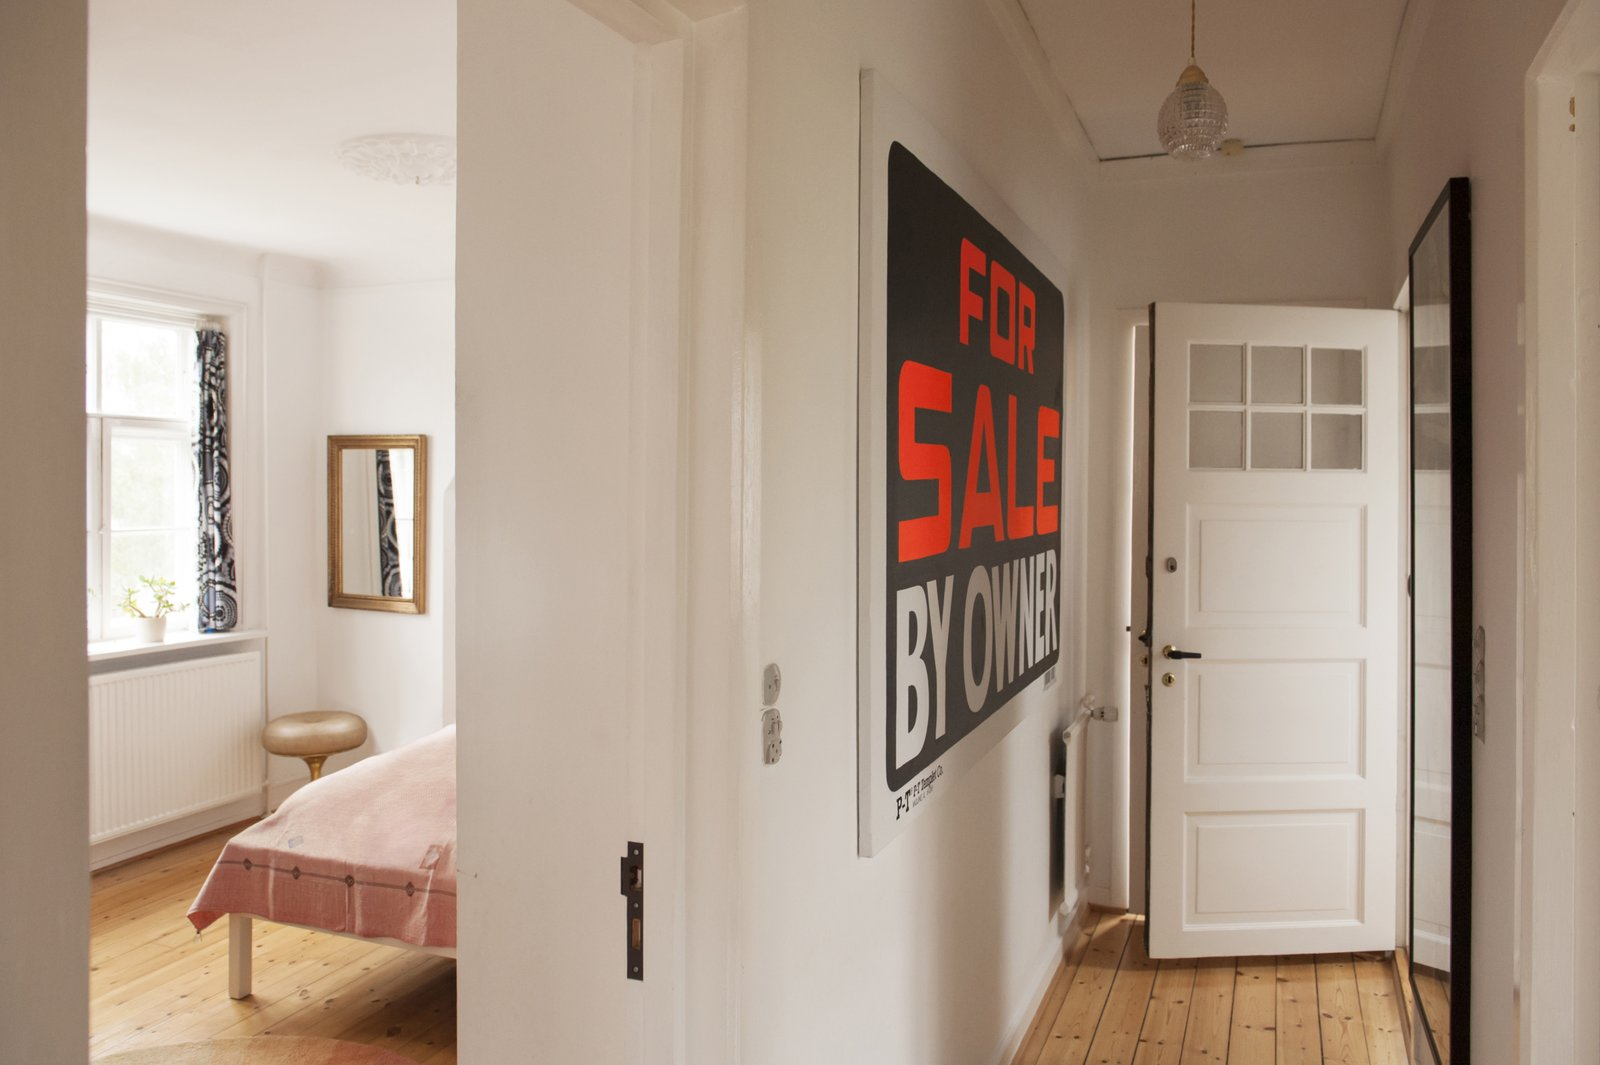 Hallway and Medium Hardwood Floor A black and neon orange For Sale sign hangs in the hallway outside the master bedroom, adding a bit of whimsy to the space.  Colorful & Eclectic Danish Home by Petra Ford